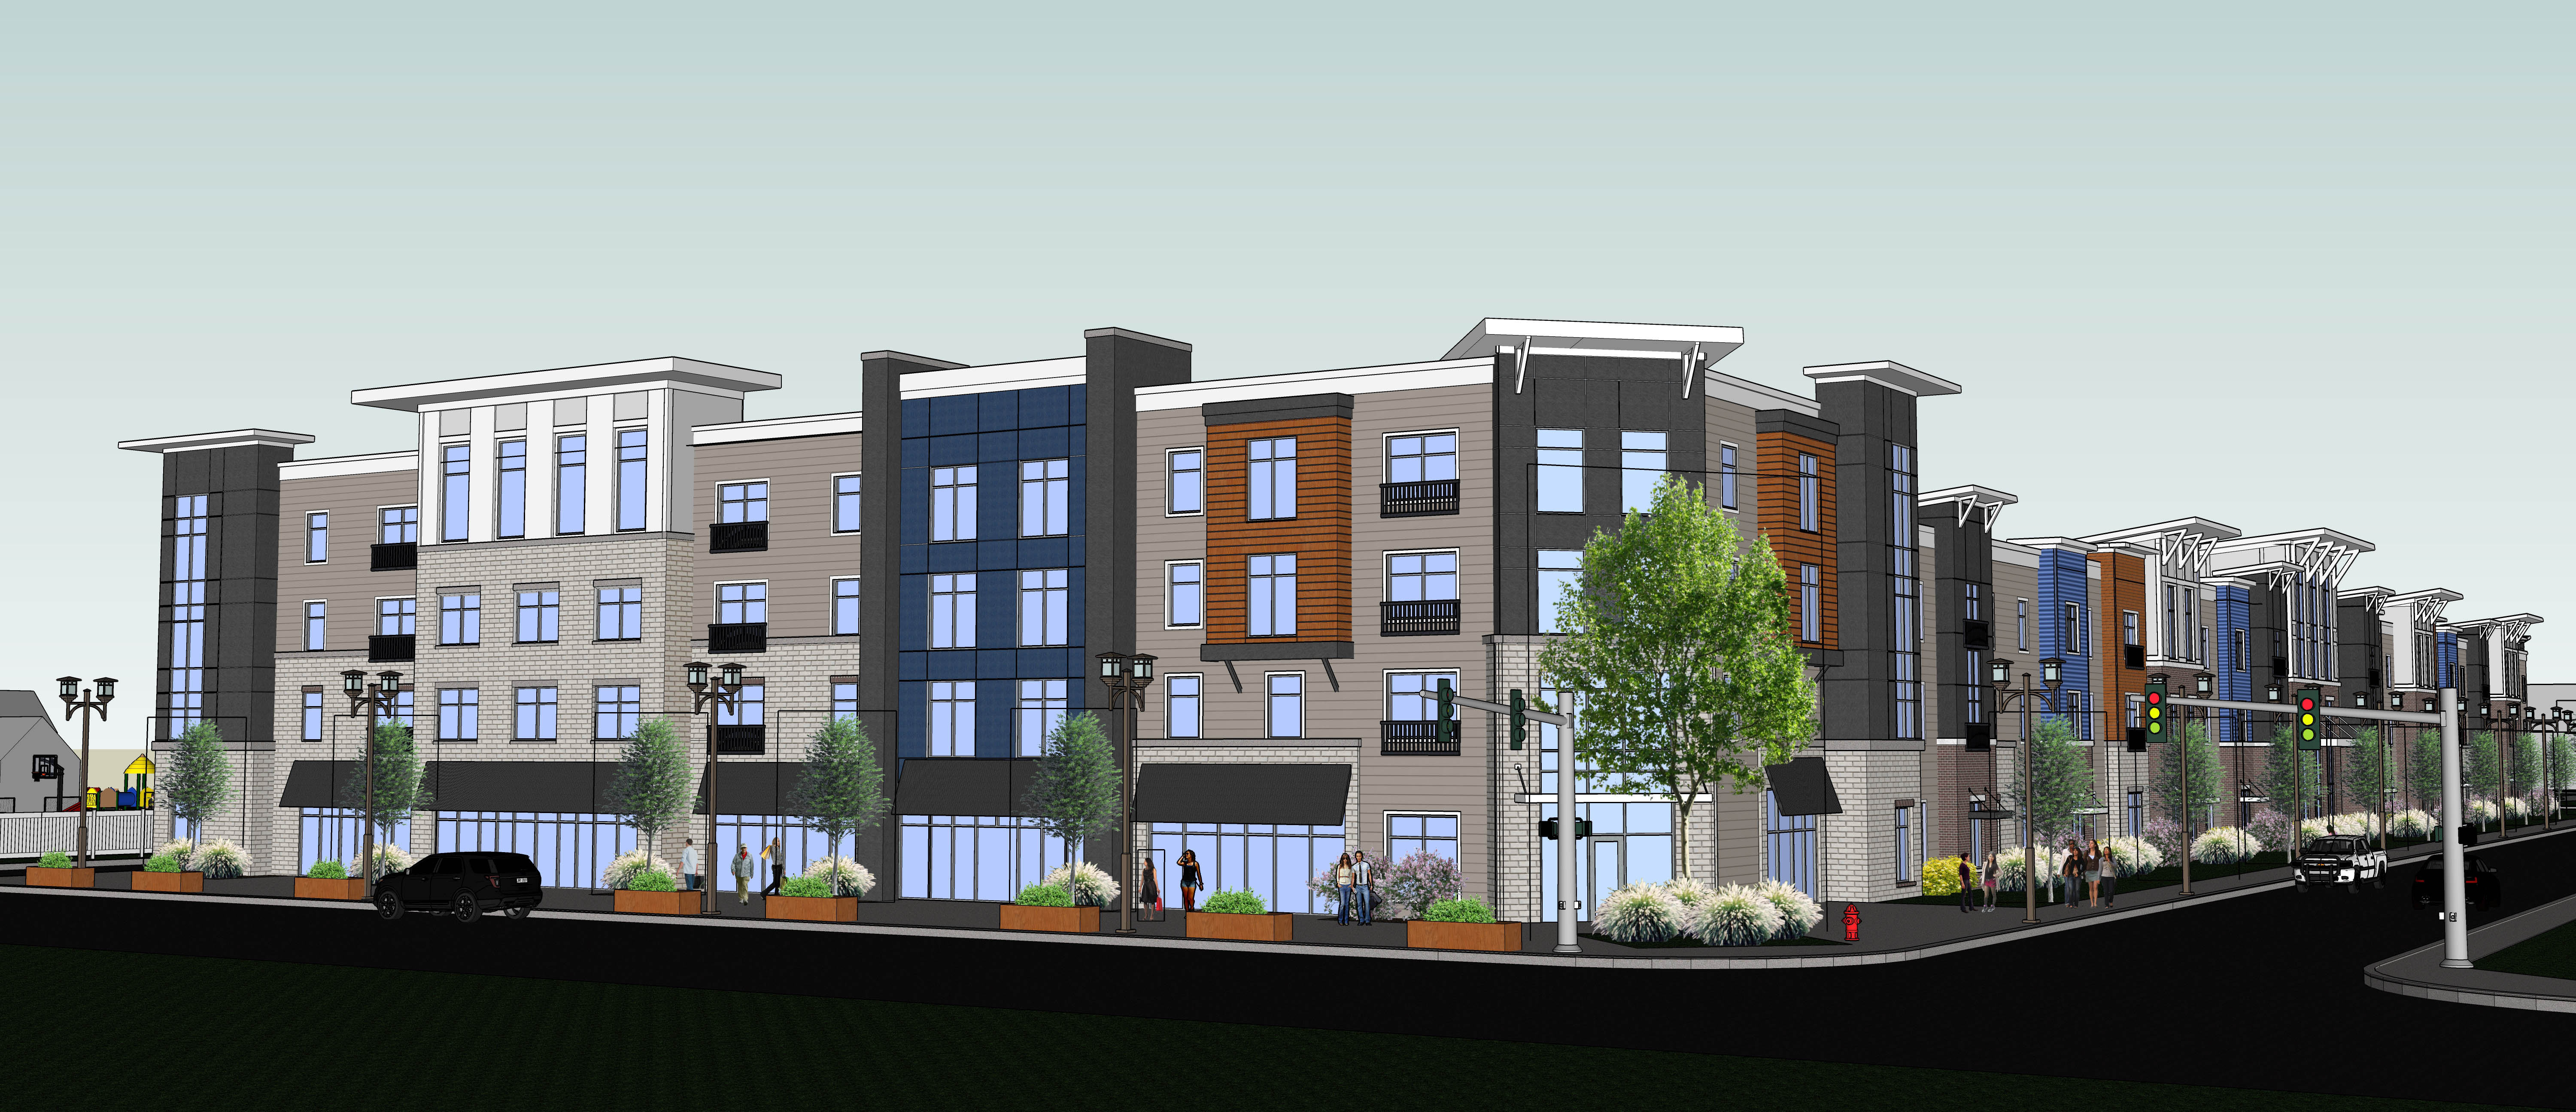 Artist's rendering of the proposed  Forge on Broadway development at Broadway and Mortimer Street.